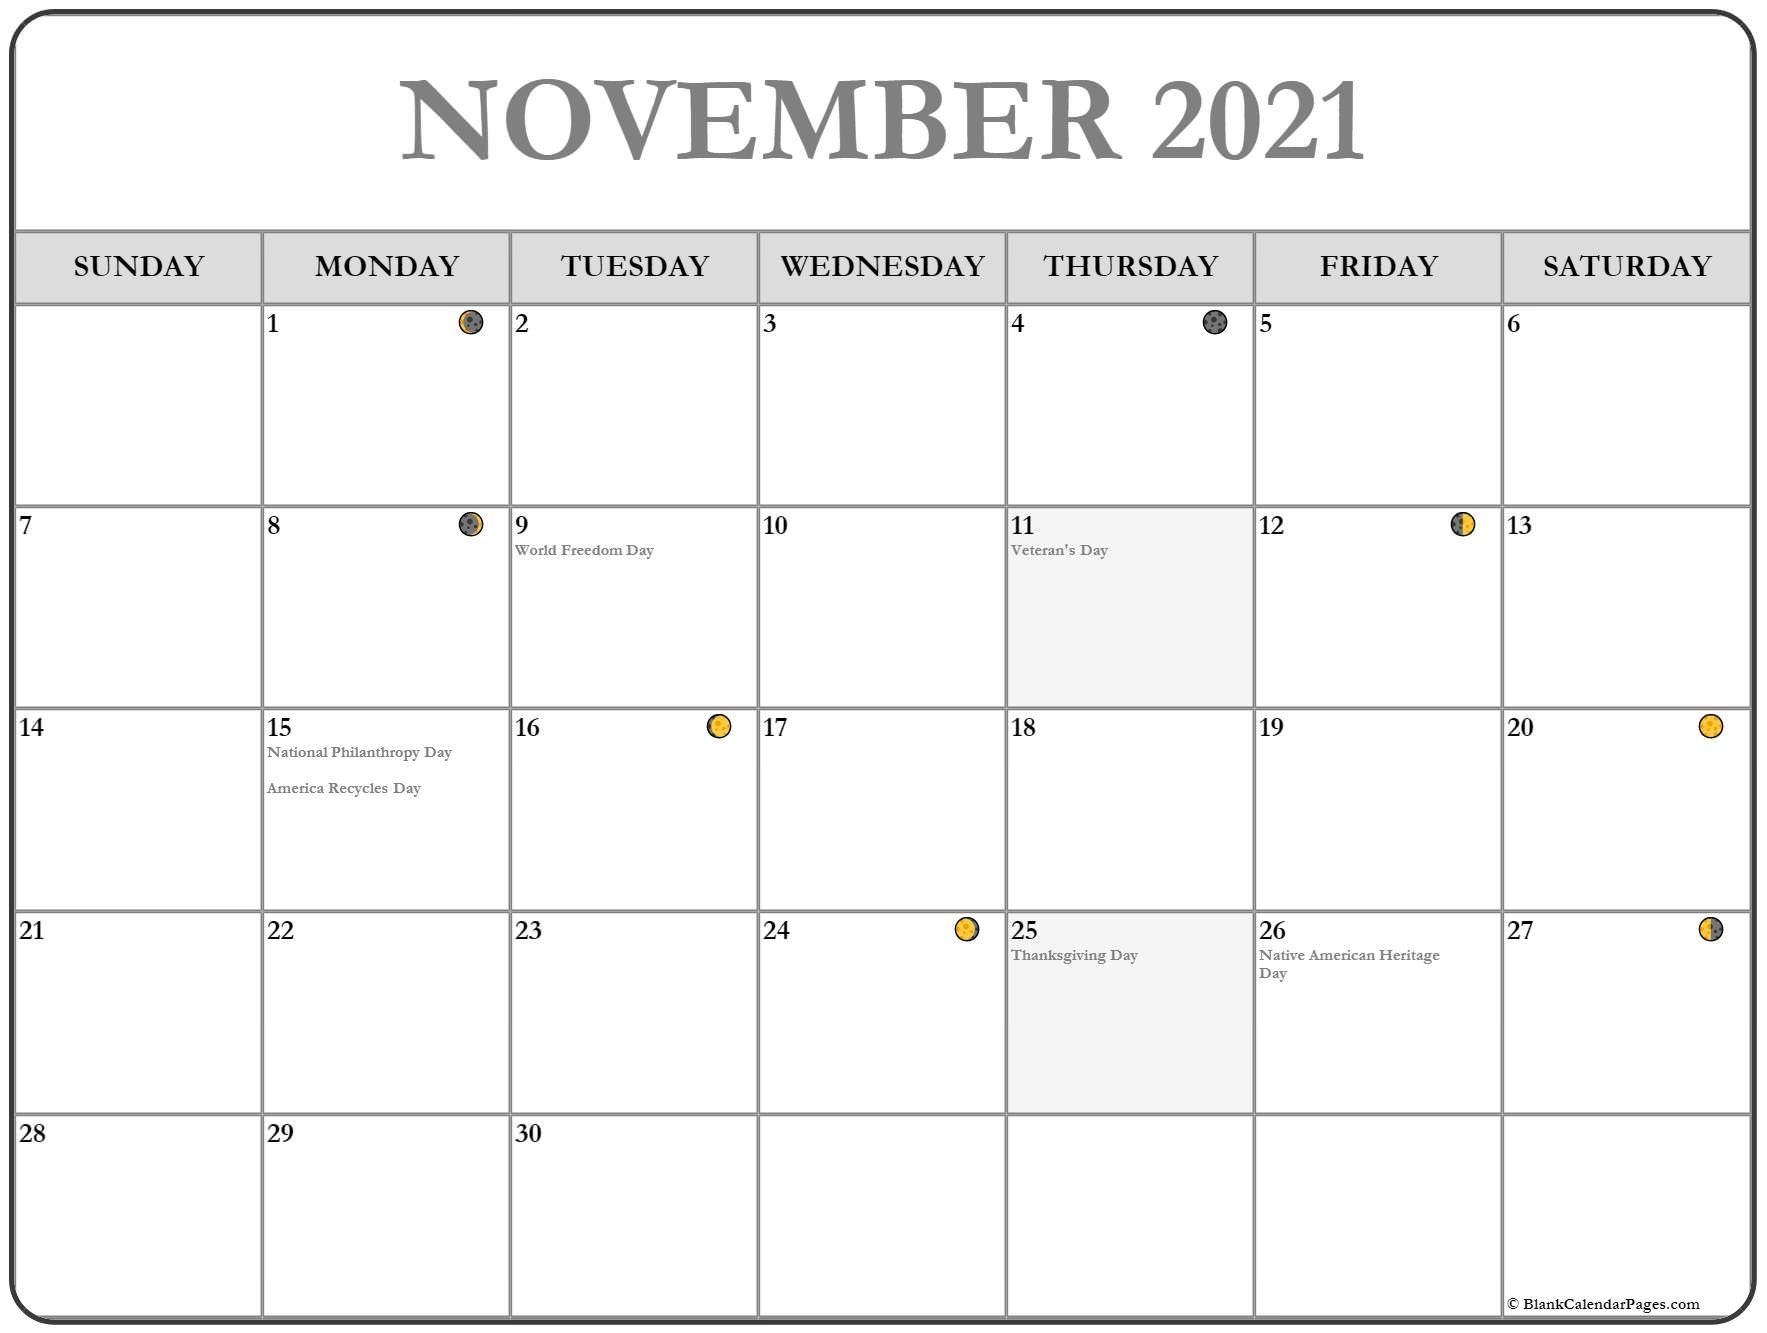 Get November 2021 With Moons